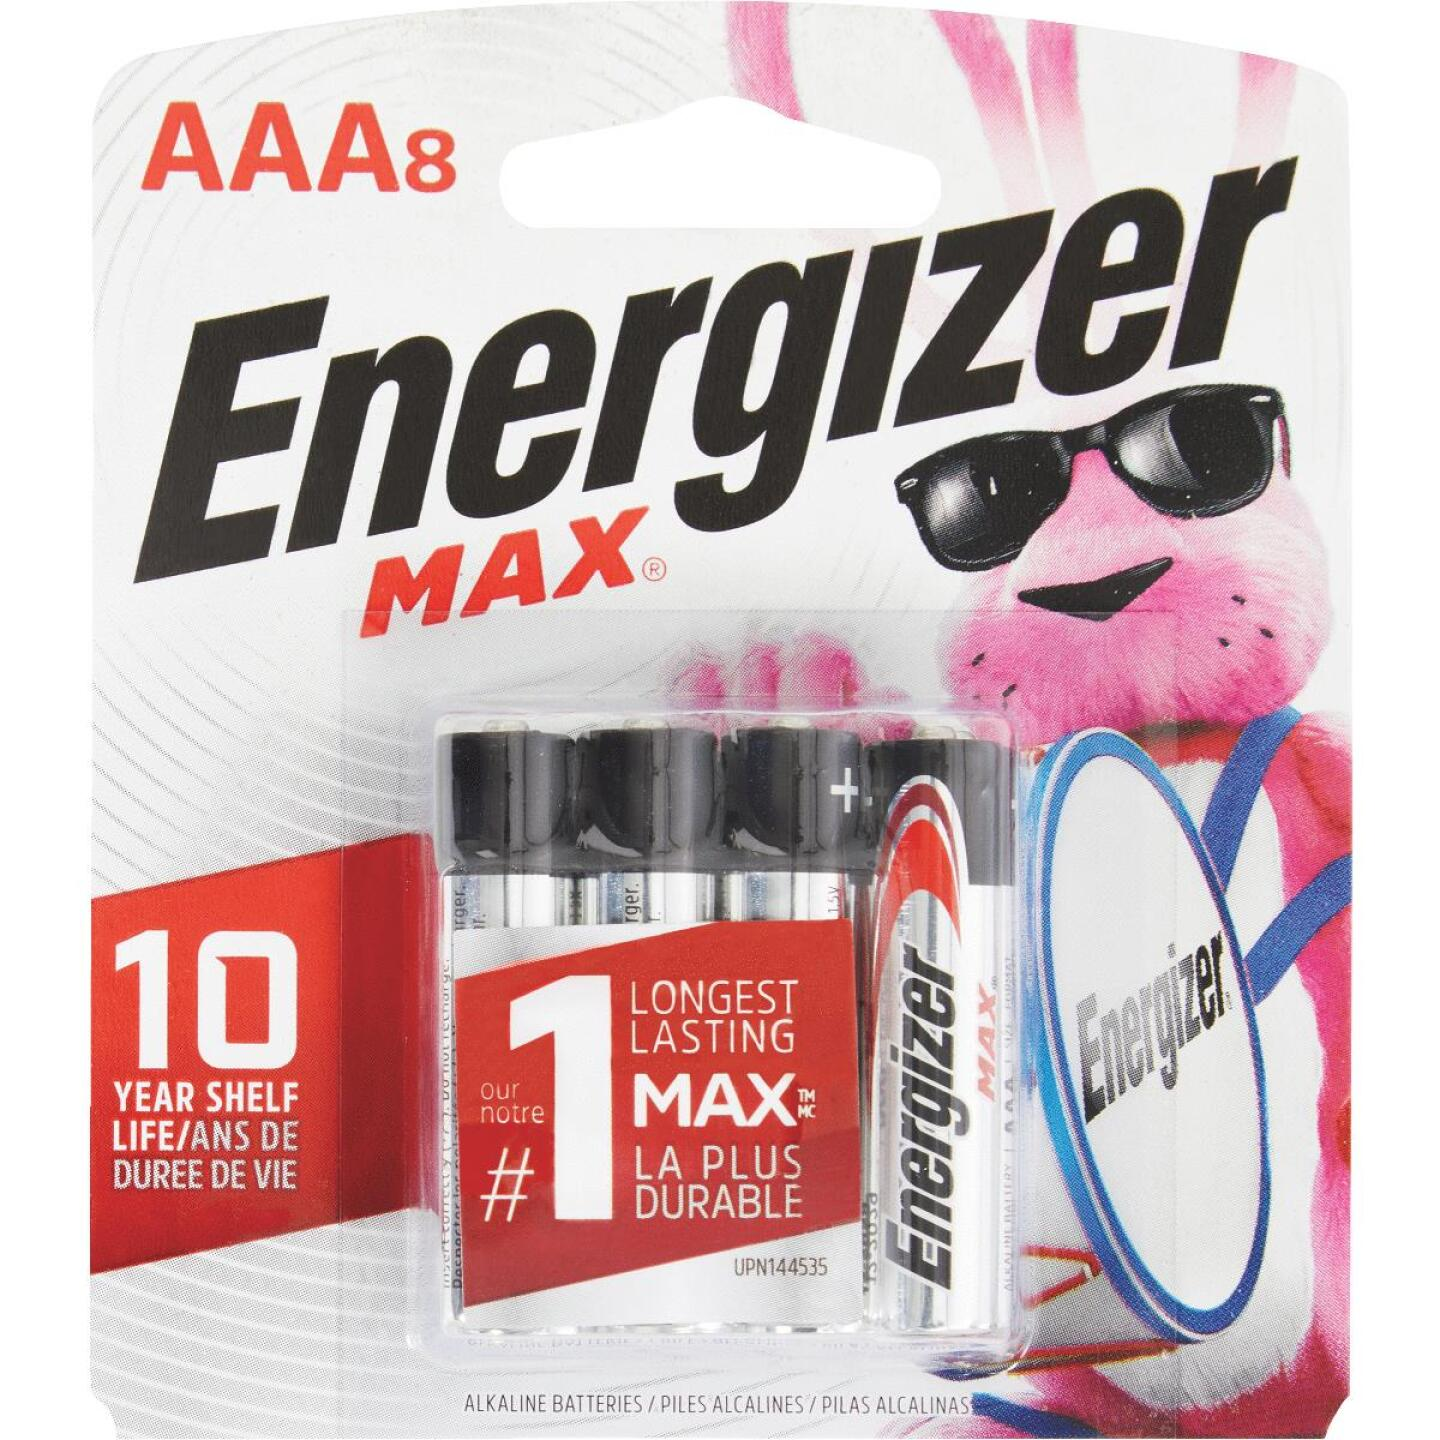 Energizer Max AAA Alkaline Battery (8-Pack) Image 1